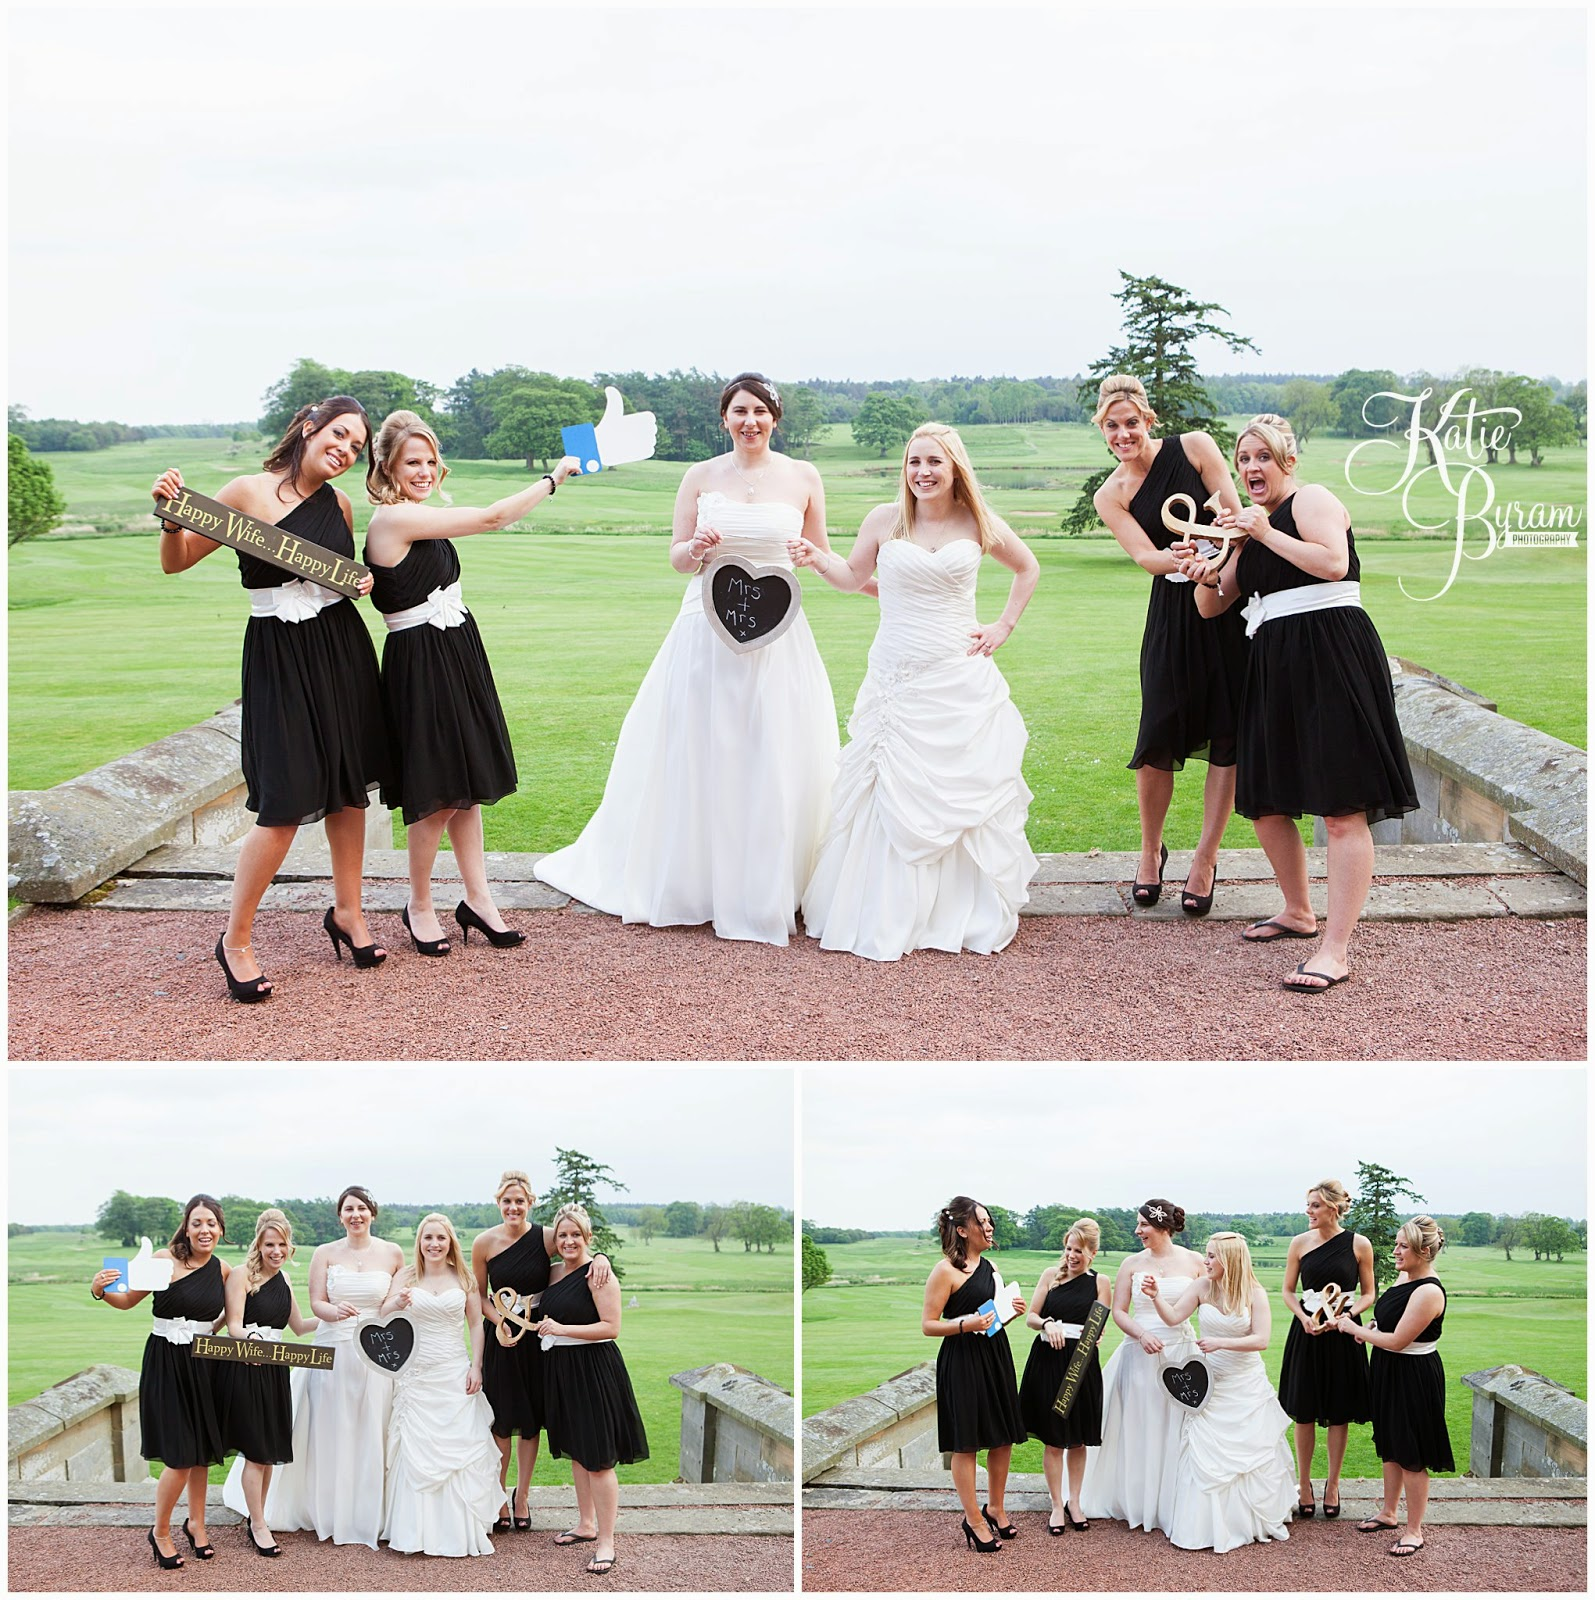 matfen hall wedding, matfen hall, northumberland wedding, newcastle united wedding, lesbian wedding, two bride wedding, lgbt wedding, gay wedding, civil partnership, powder and pin ups make up, katie byram photography, bride and bride, two weddiing dresses, mao couture bridal, jean hepple florist,